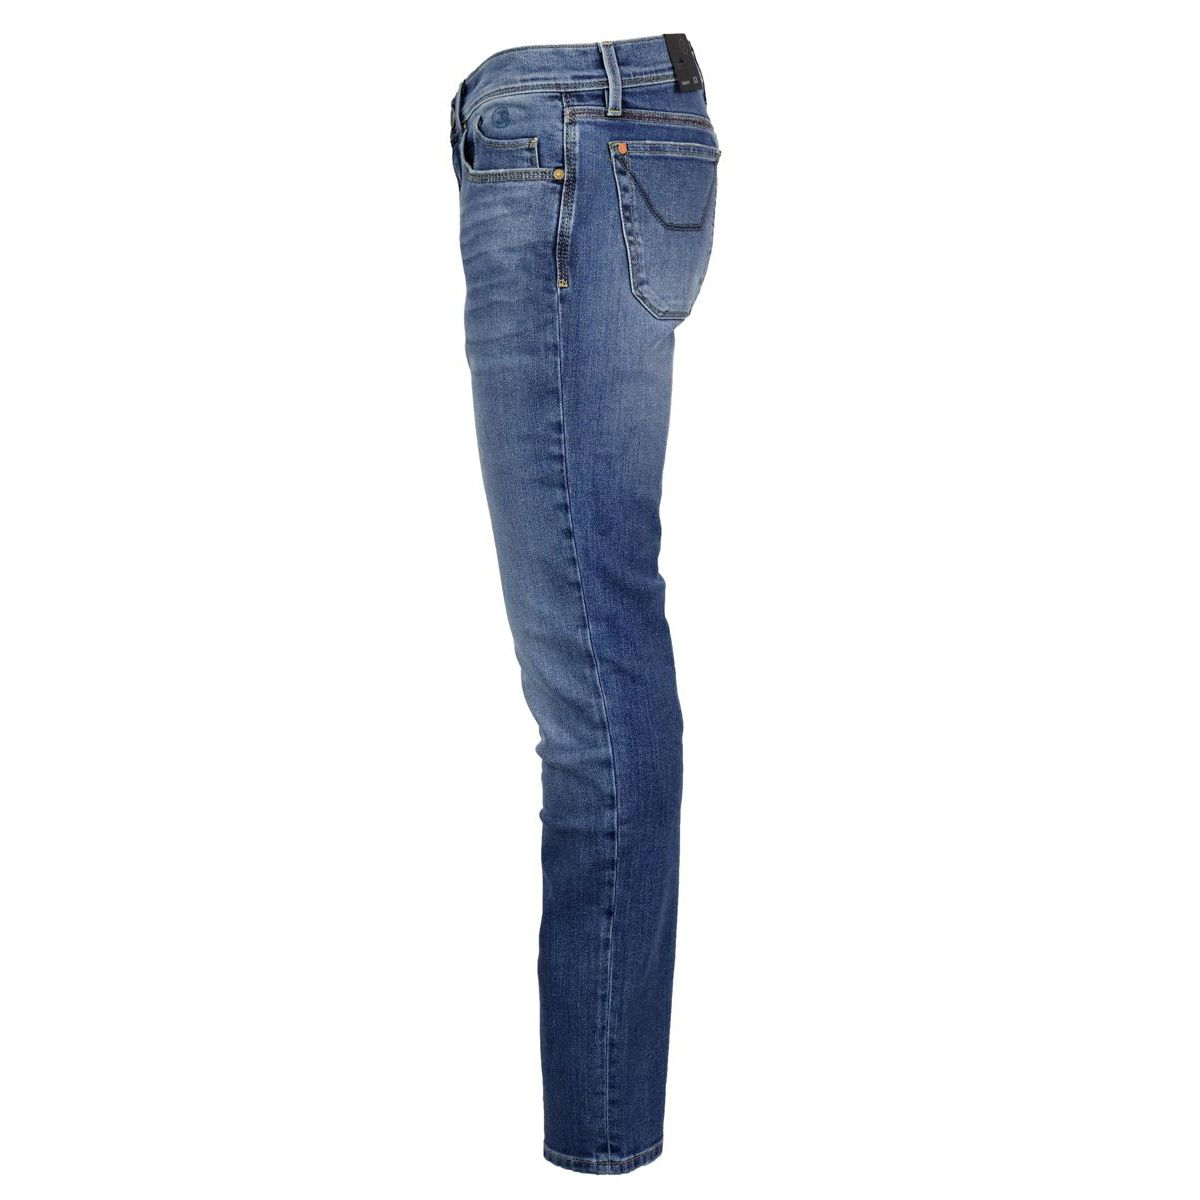 Used 3Blend slim effect jeans Light denim Jeckerson